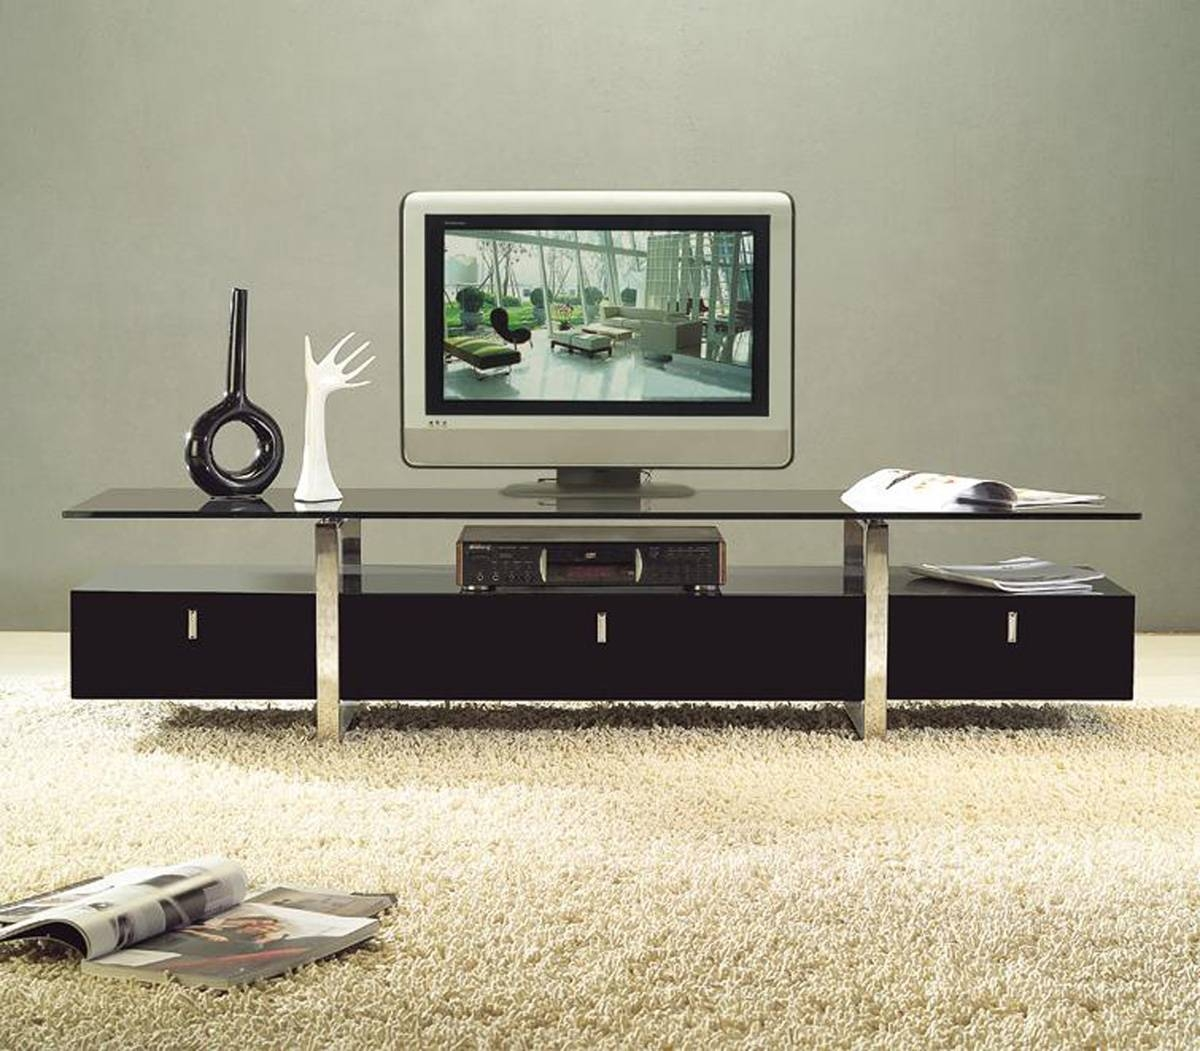 Clear Lined Design Contemporary Brown Color Tv Stand With Glass With Regard To Stylish Tv Stands (View 13 of 15)